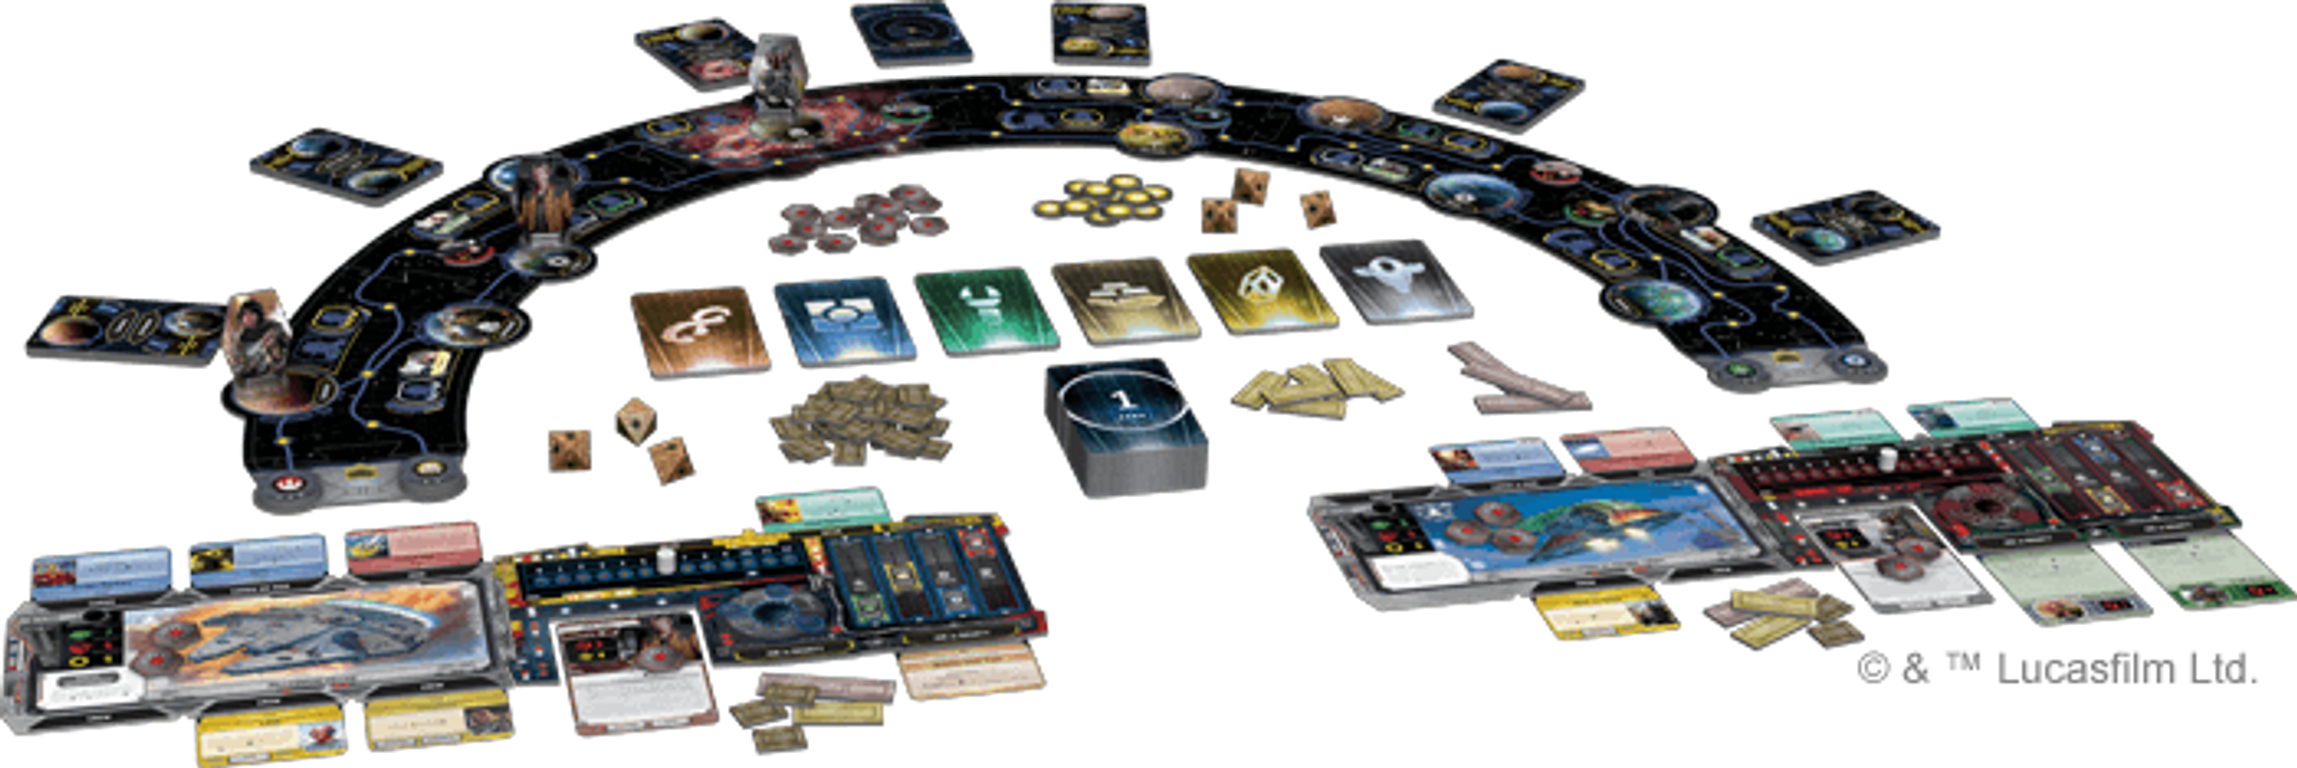 Star Wars: Outer Rim components